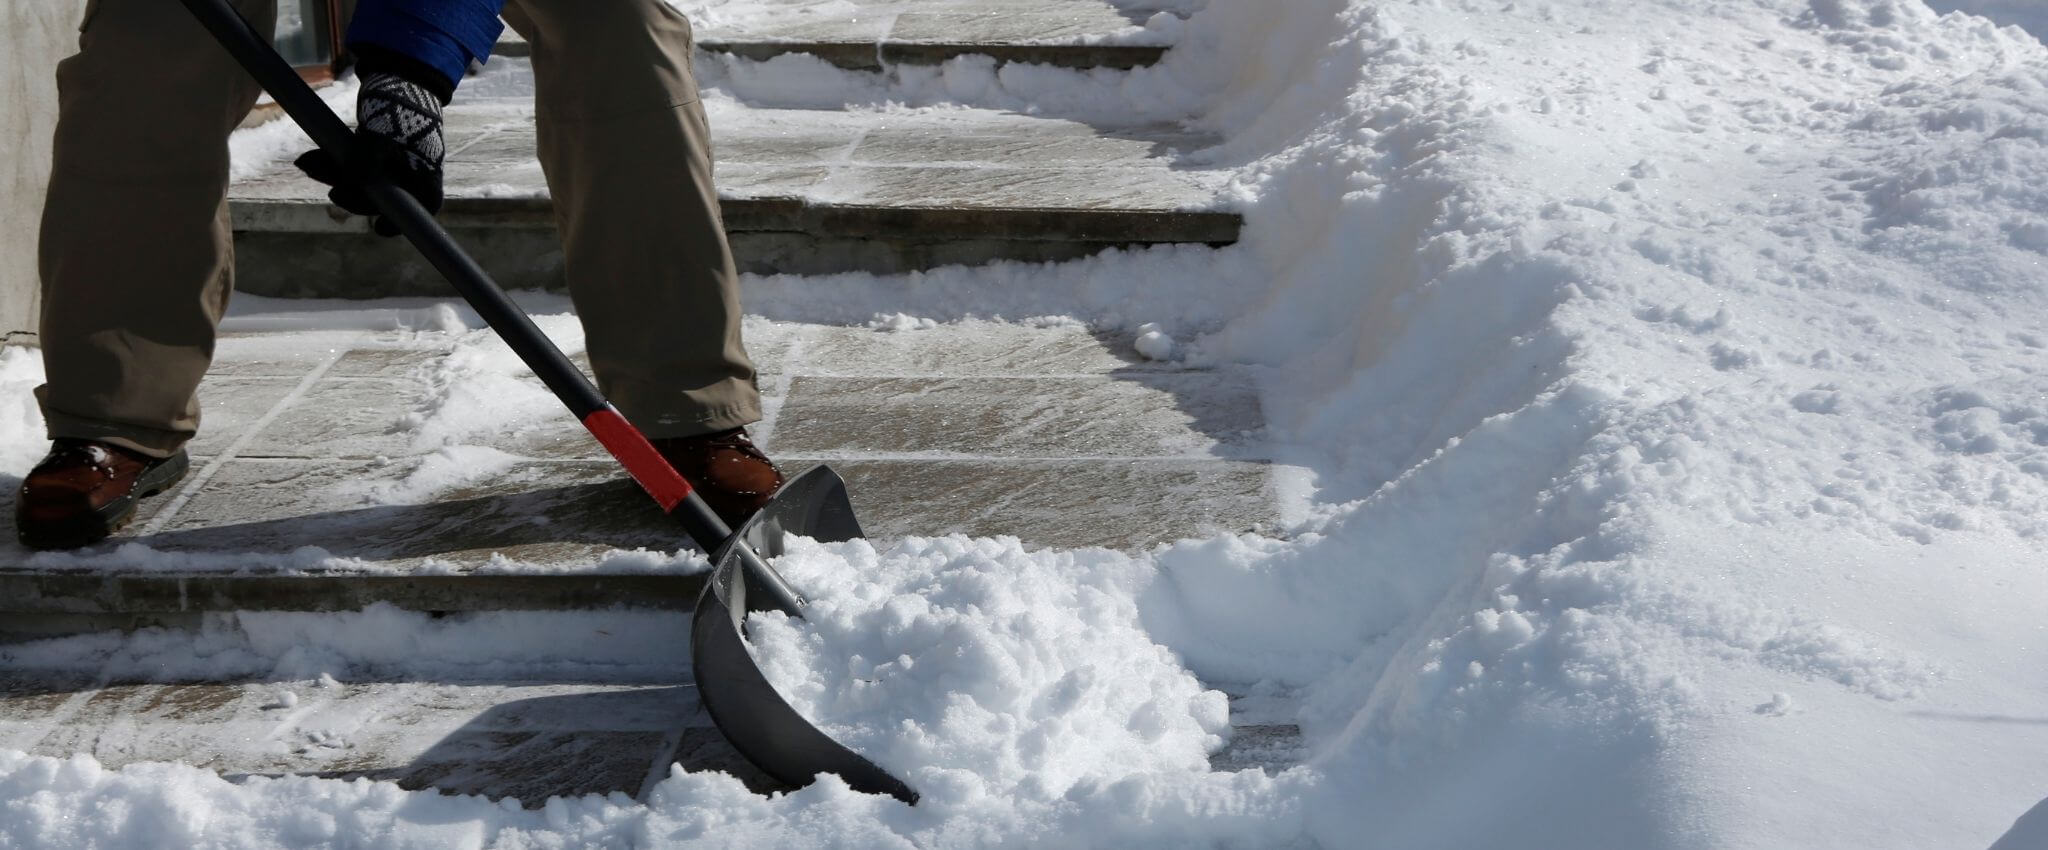 Shoveling snow - ways to help others during the holidays